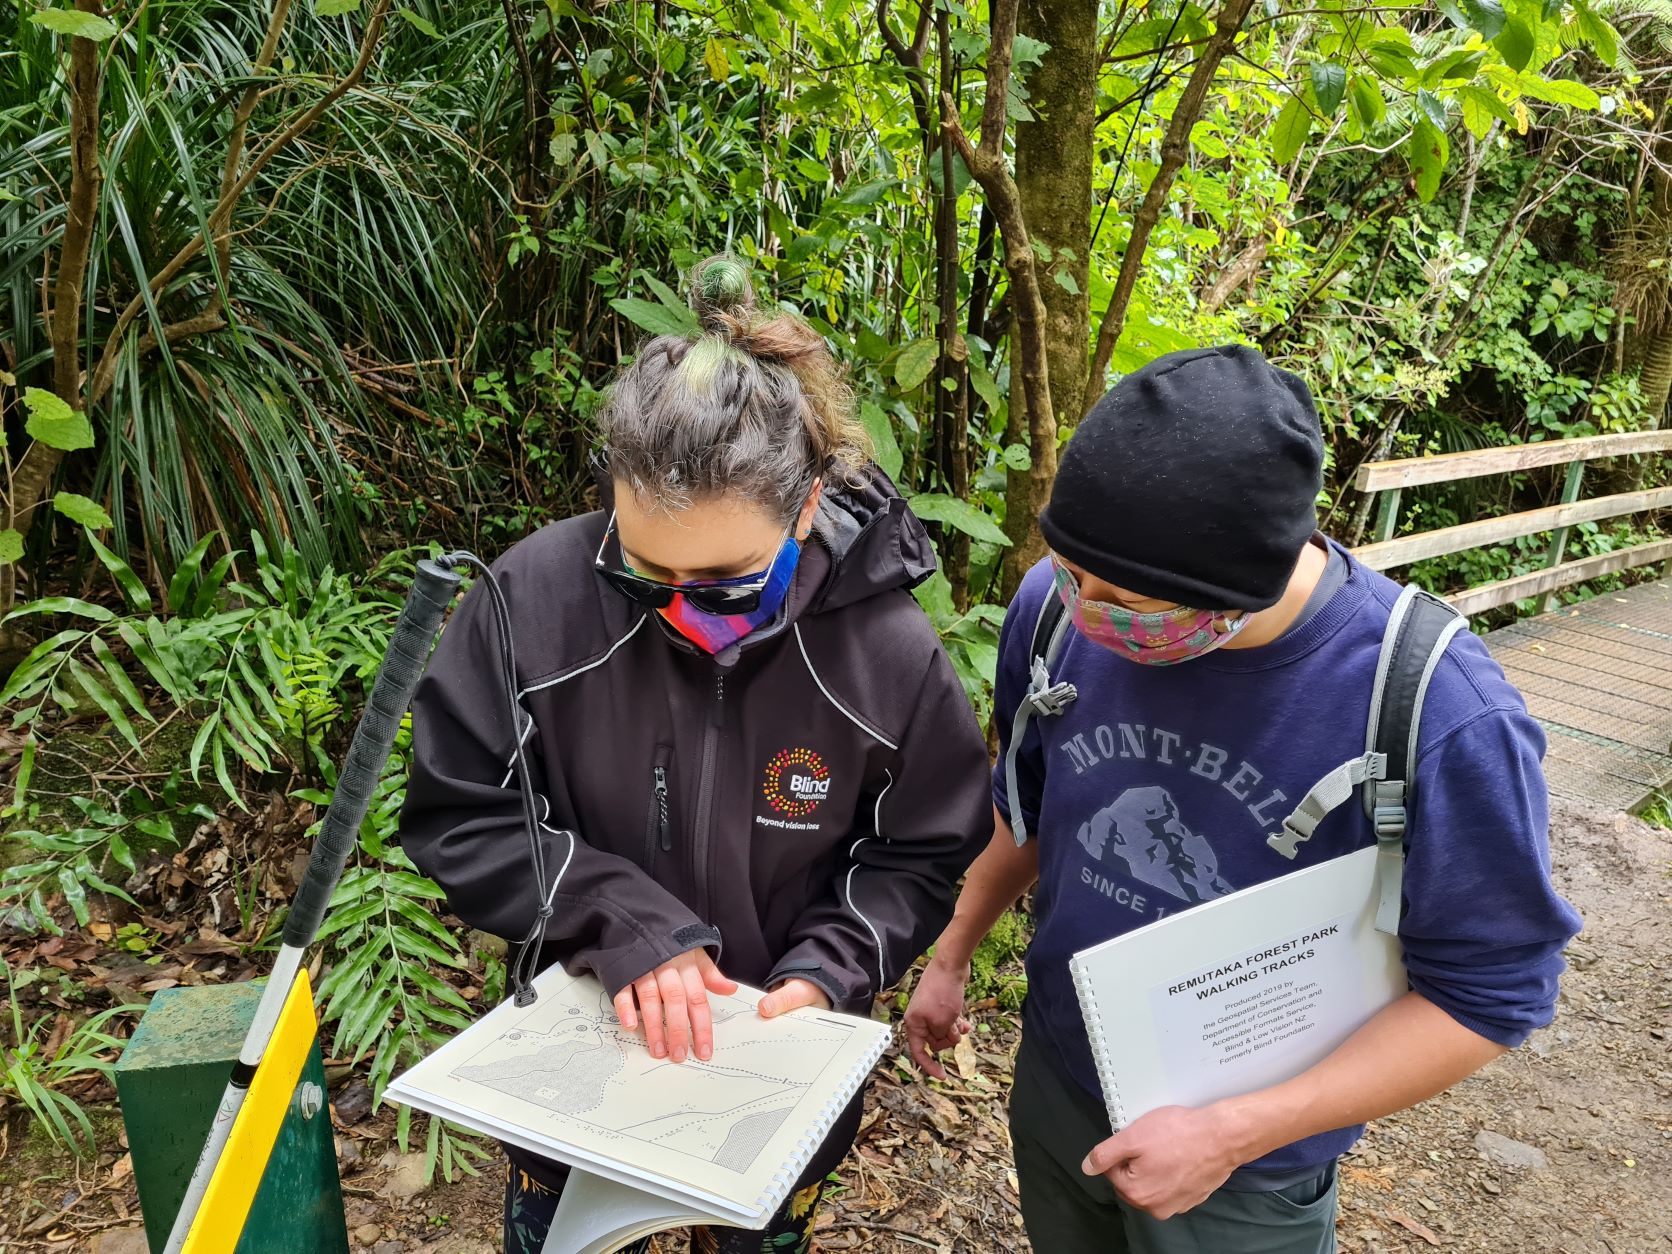 Mary and friend reading braille map of Remutaka Forest Park, near a bridge and a DOC sign, surrounded by trees.  Mary is wearing a black Blind Foundation jacket, both wearing colourful face masks.